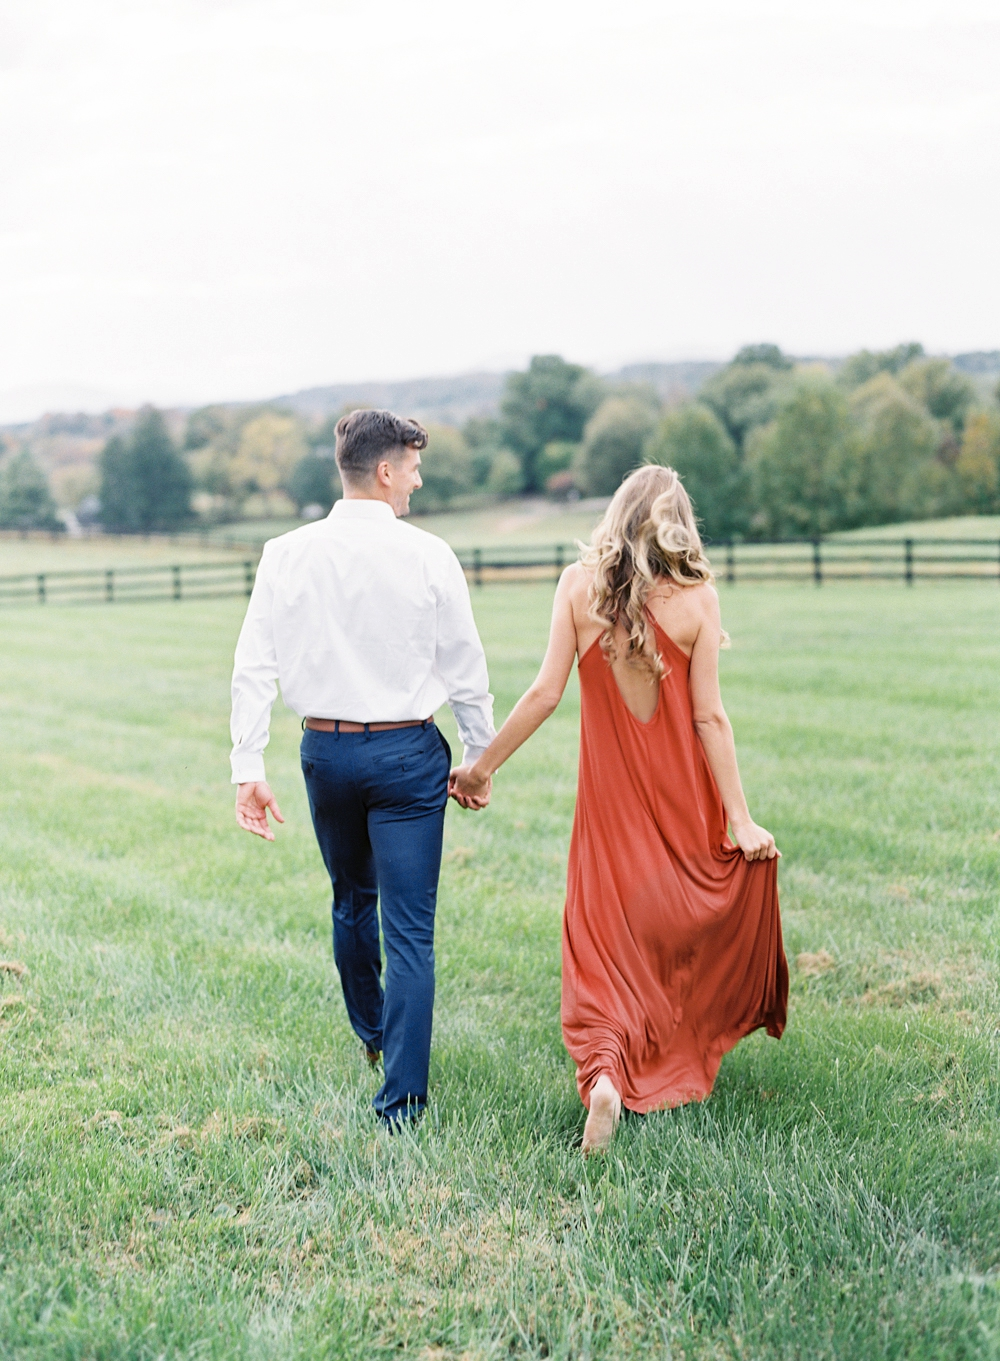 Vicki+Grafton+Photography+Fine+Art+Film+Middleburg+Virginia+Wedding+Photographer_0039.jpg